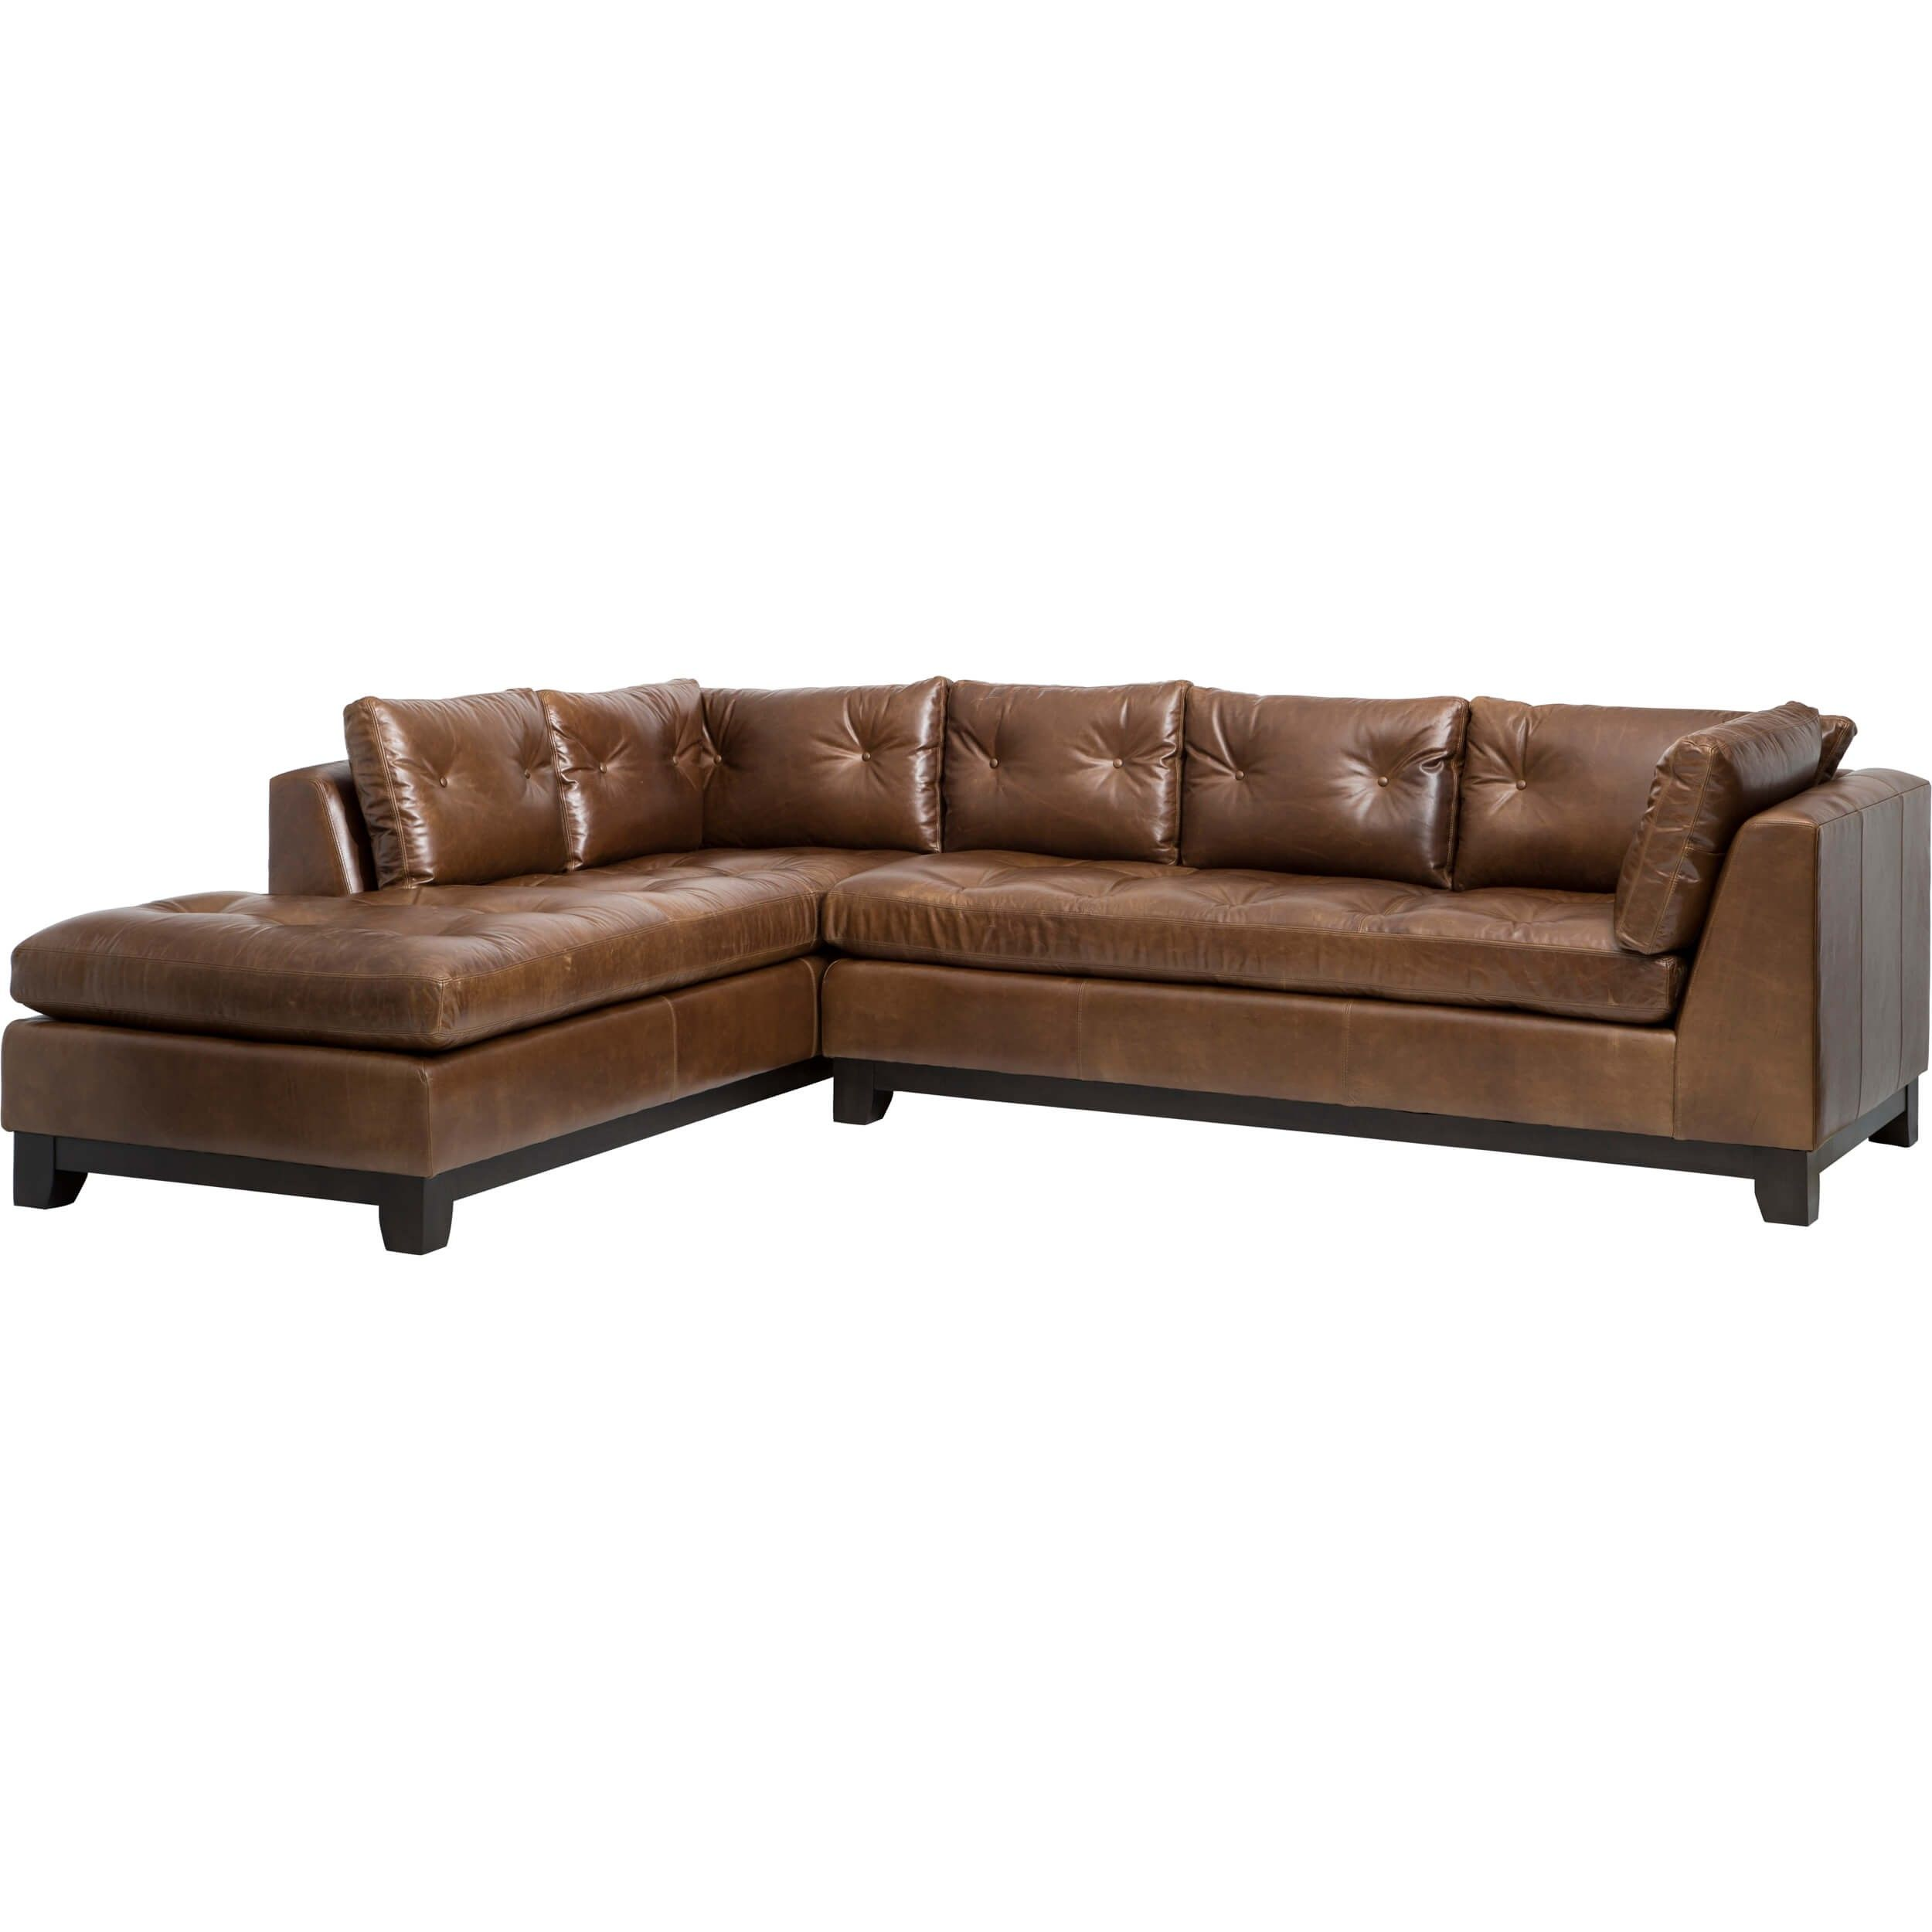 Wondrous Chandler Leather Sectional Libby Saddle Den Design Ideas Alphanode Cool Chair Designs And Ideas Alphanodeonline